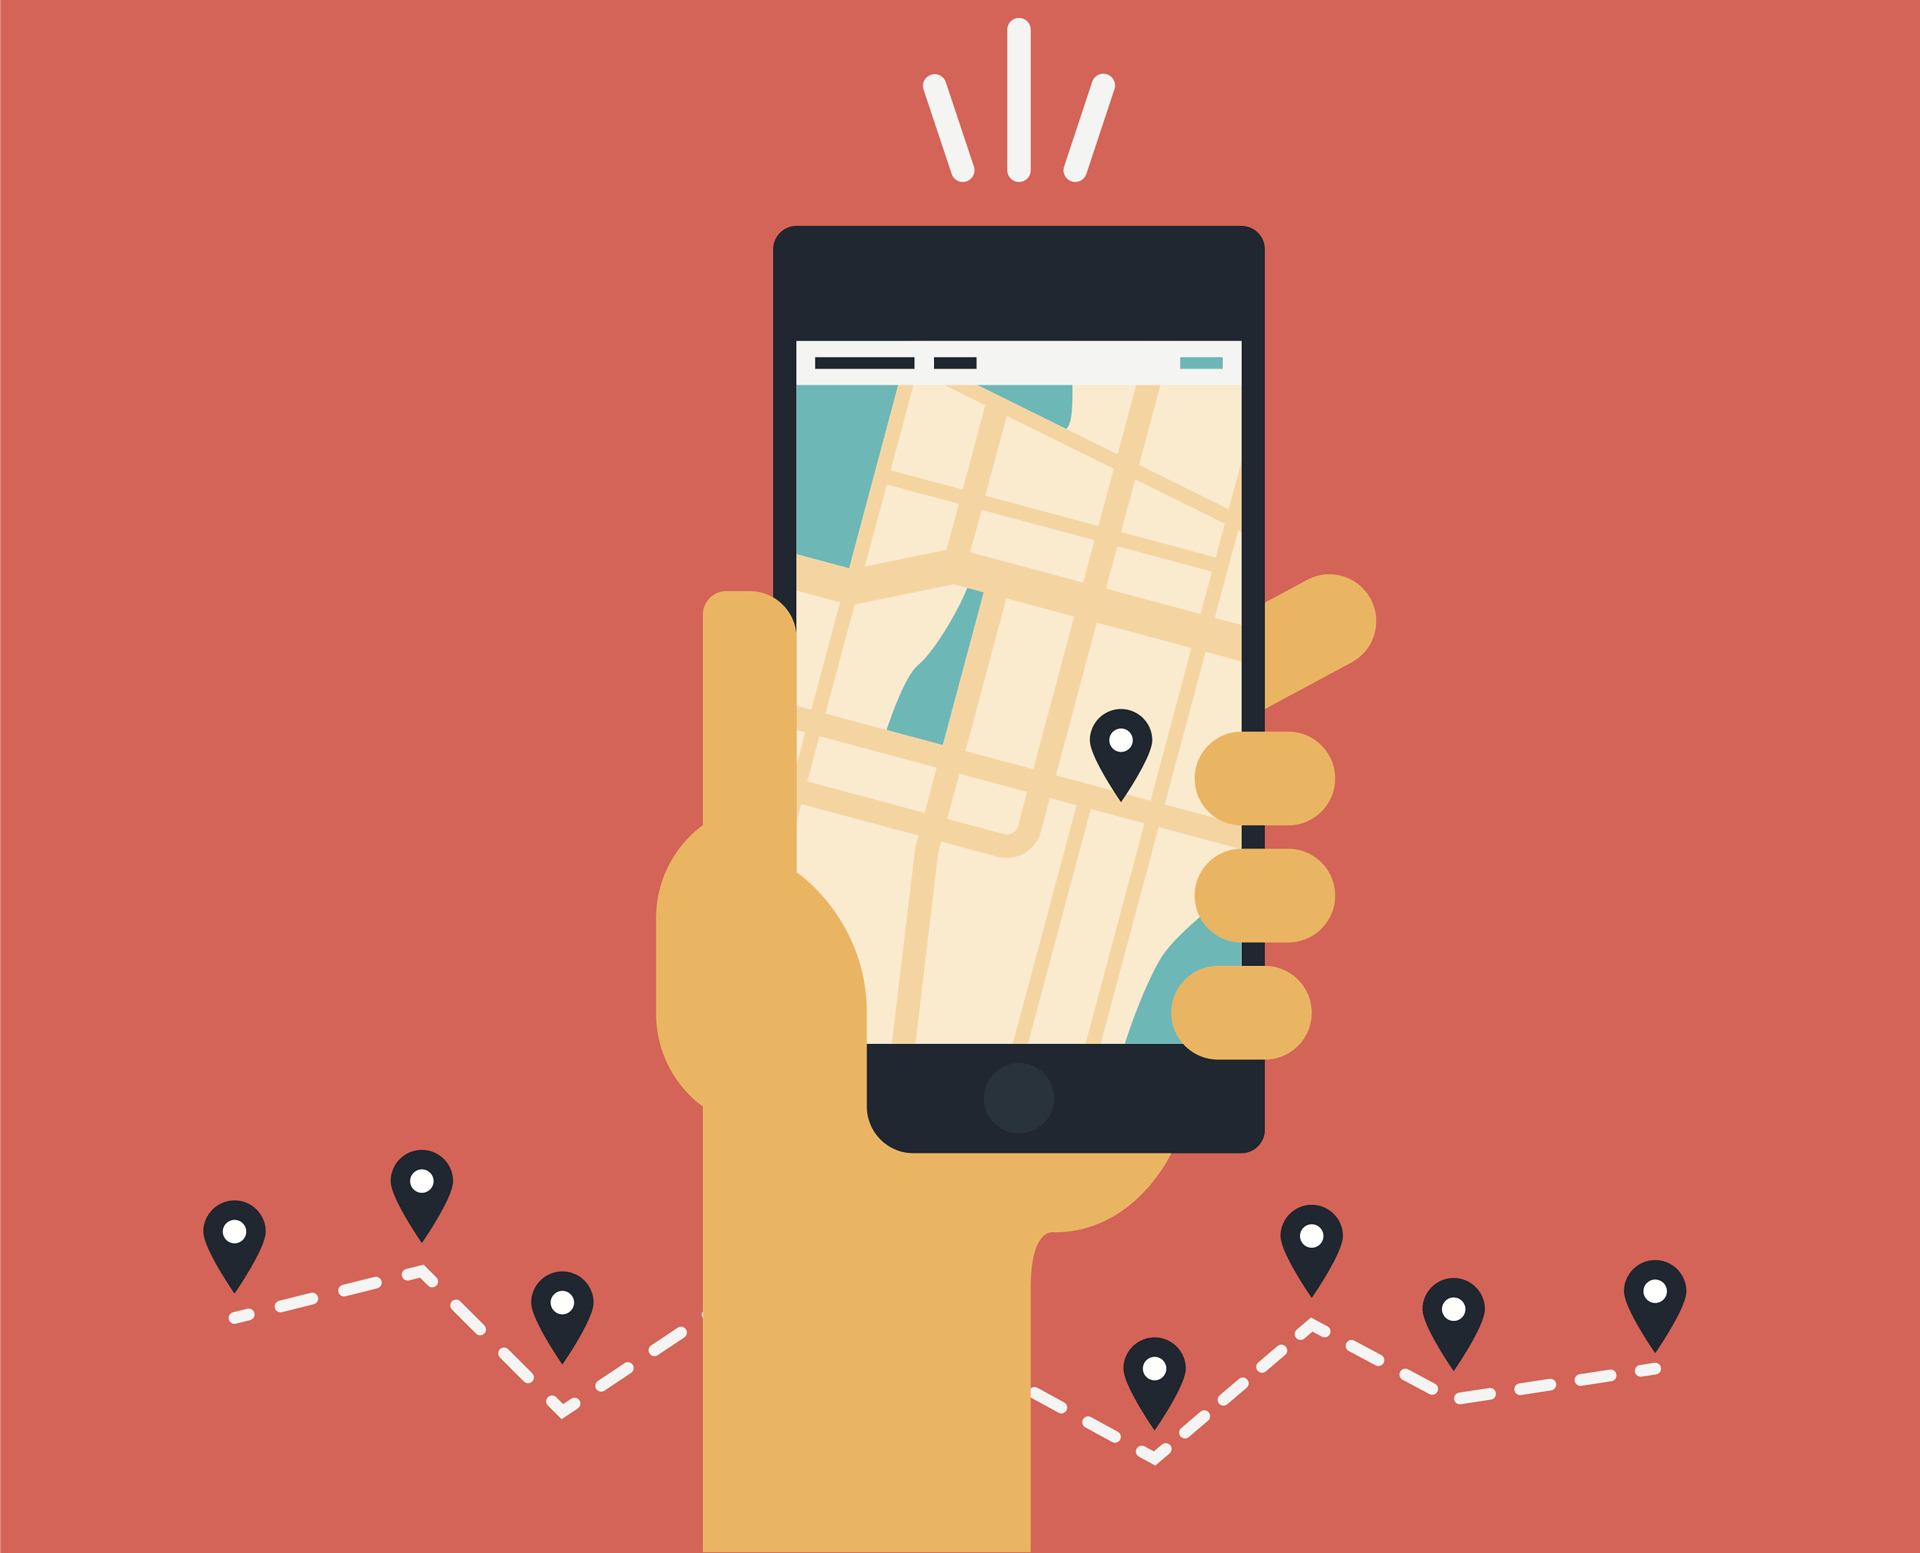 10 Ways to Track a Cell Phone Without Them Knowing